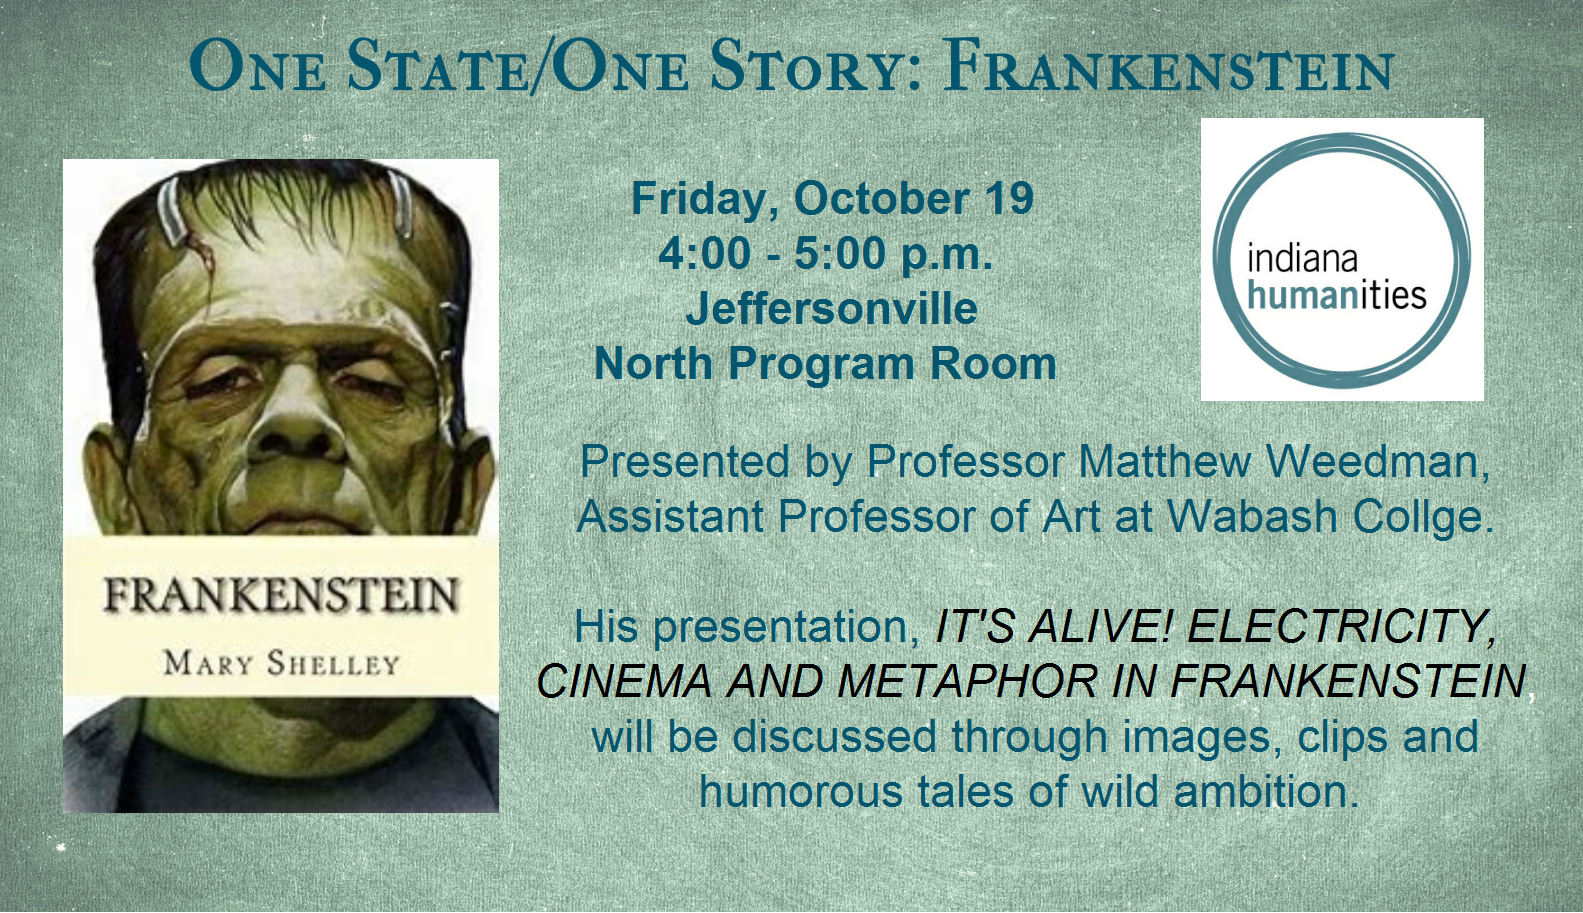 One State/One Story: Frankenstein